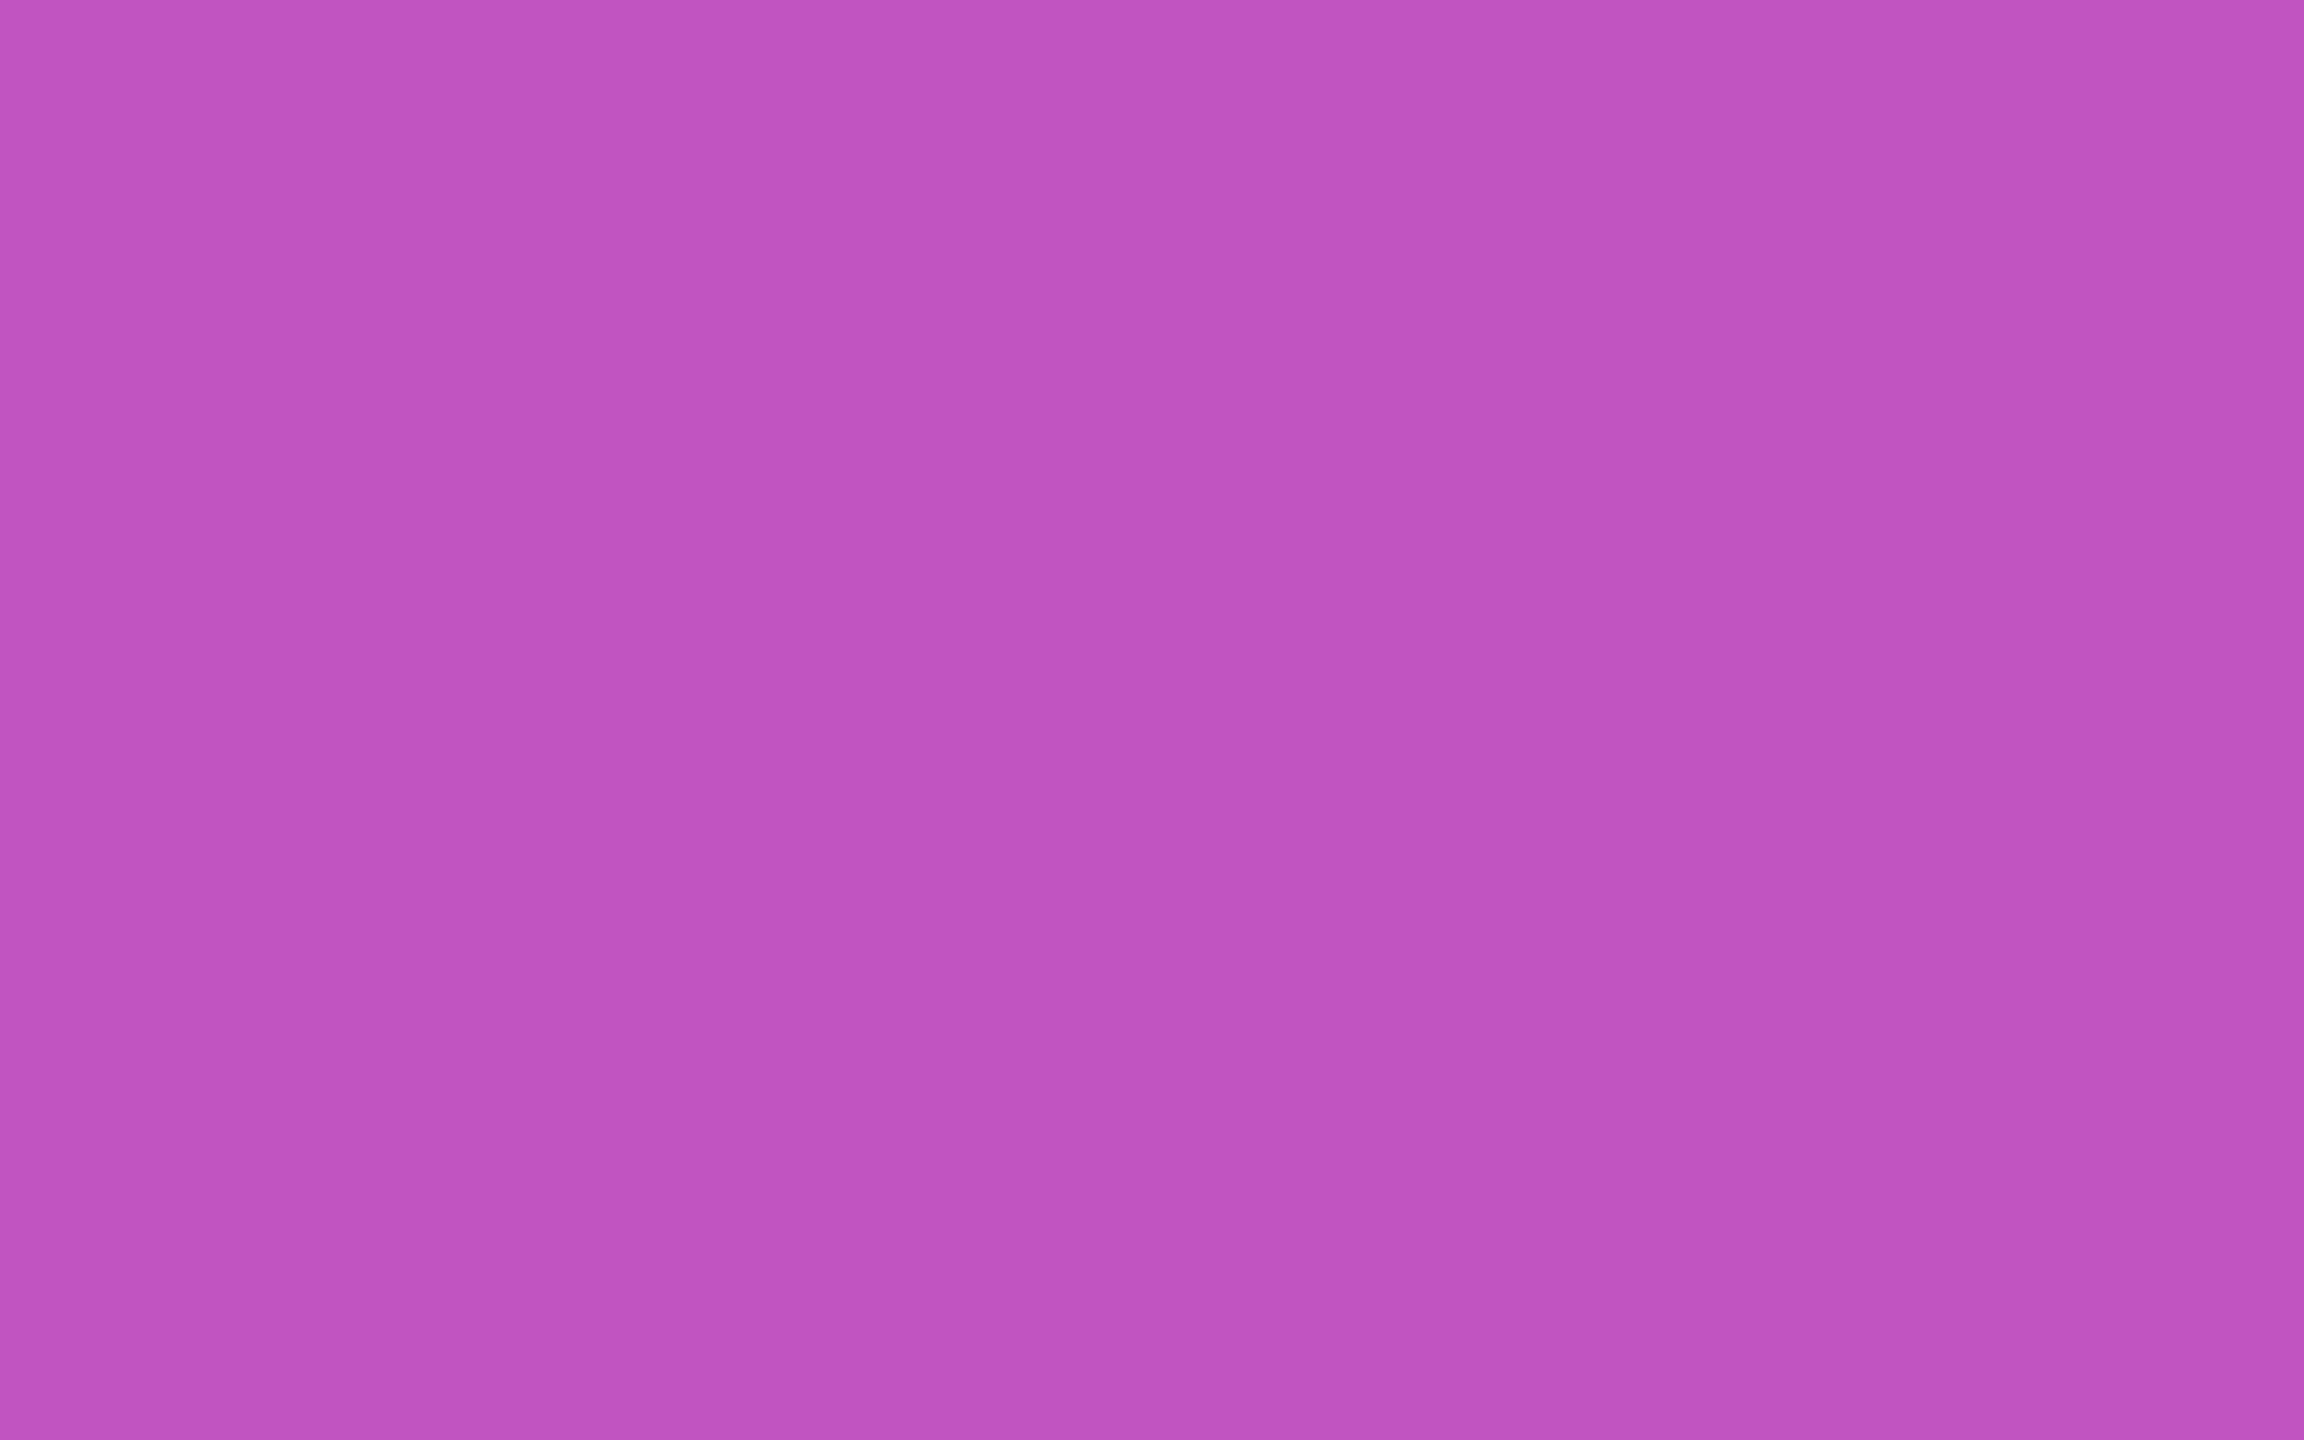 2304x1440 Deep Fuchsia Solid Color Background